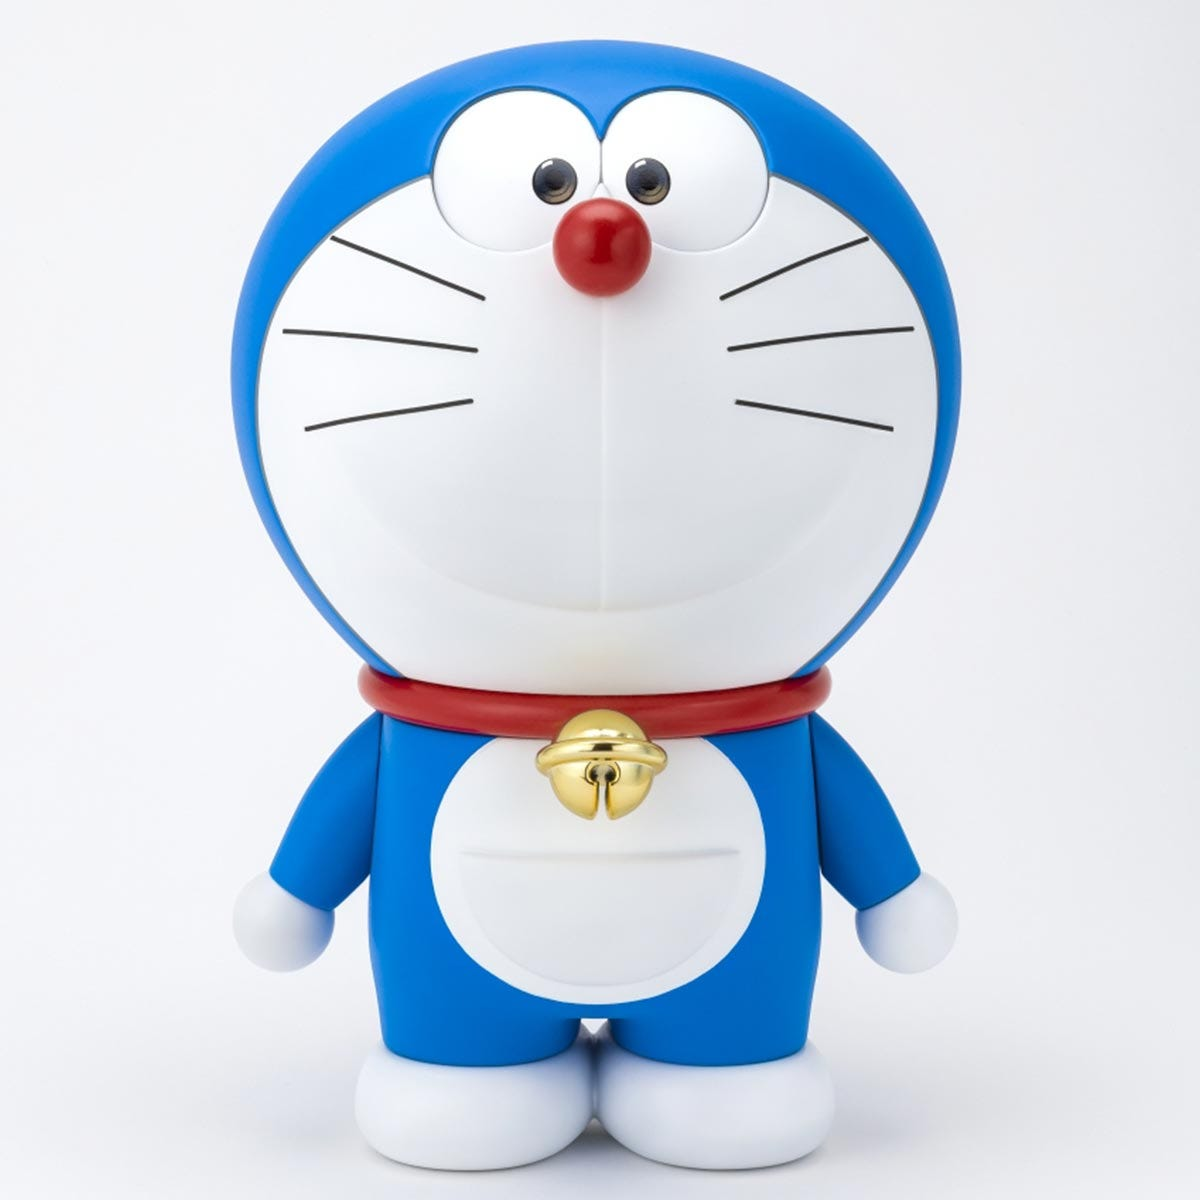 "Bandai Doraemon (Stand By Me Doraemon2) ""Stand By Me Doraemon2"", Bandai Tamashii Nations Figuarts ZERO EX (9.8 Inch approx)"